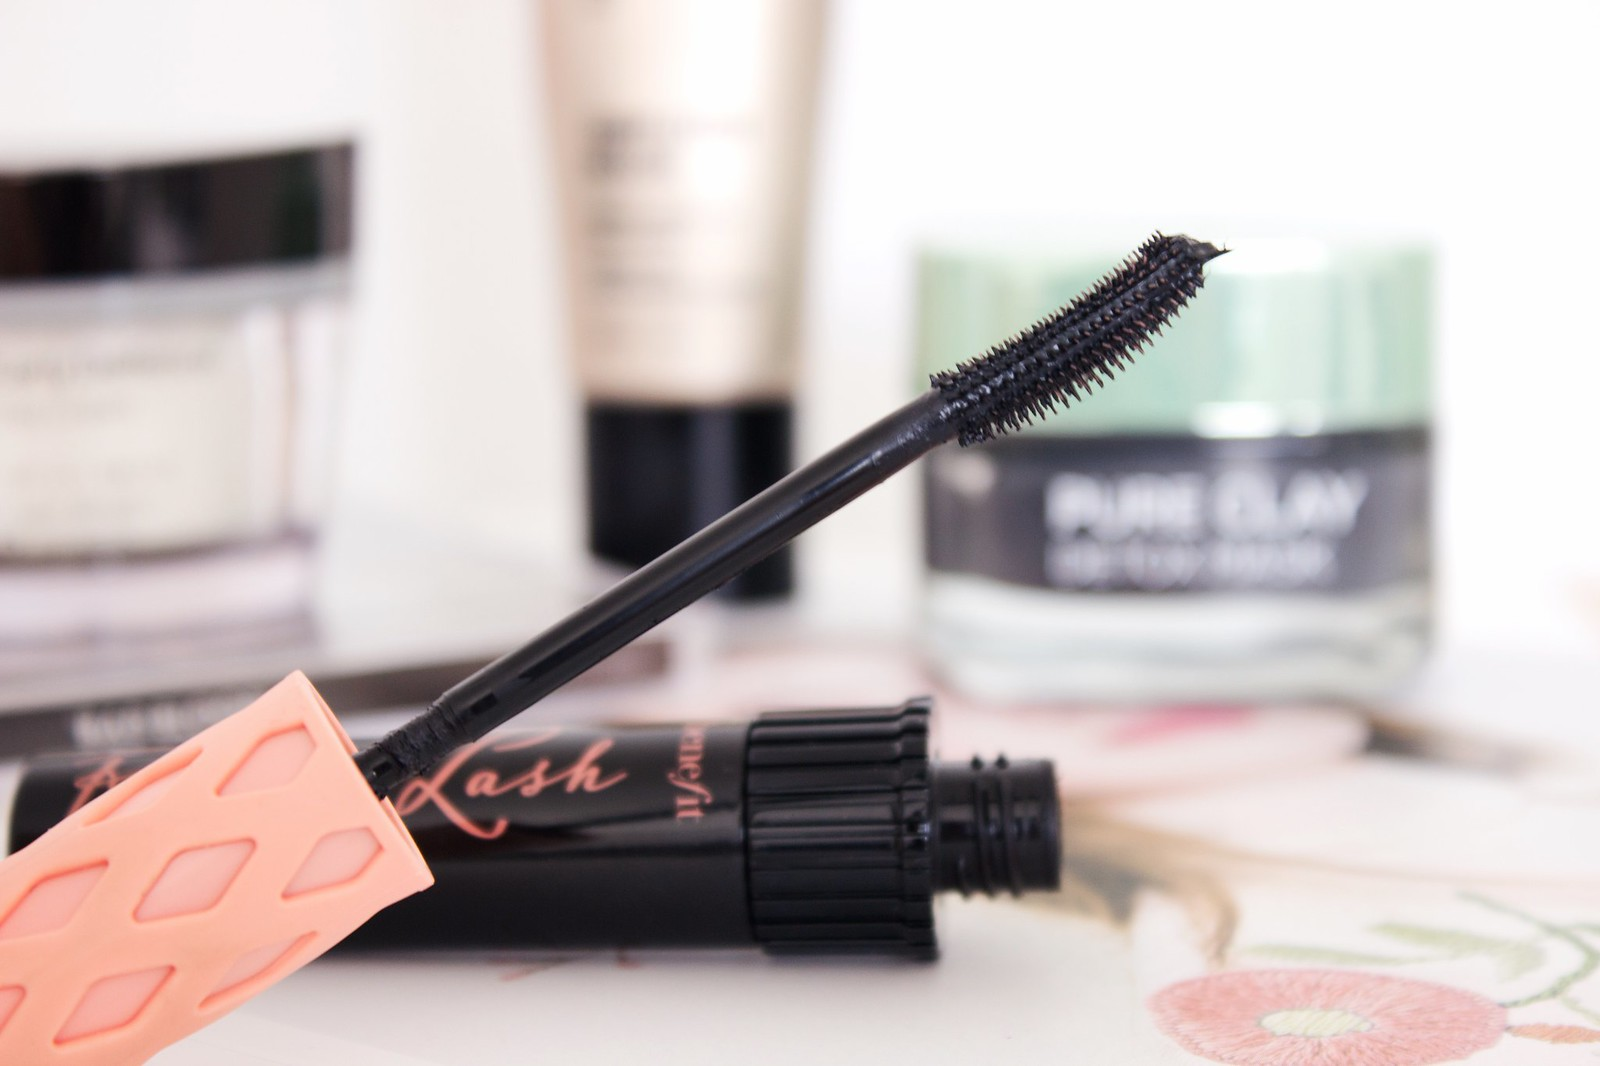 Benefit Roller Lash Review